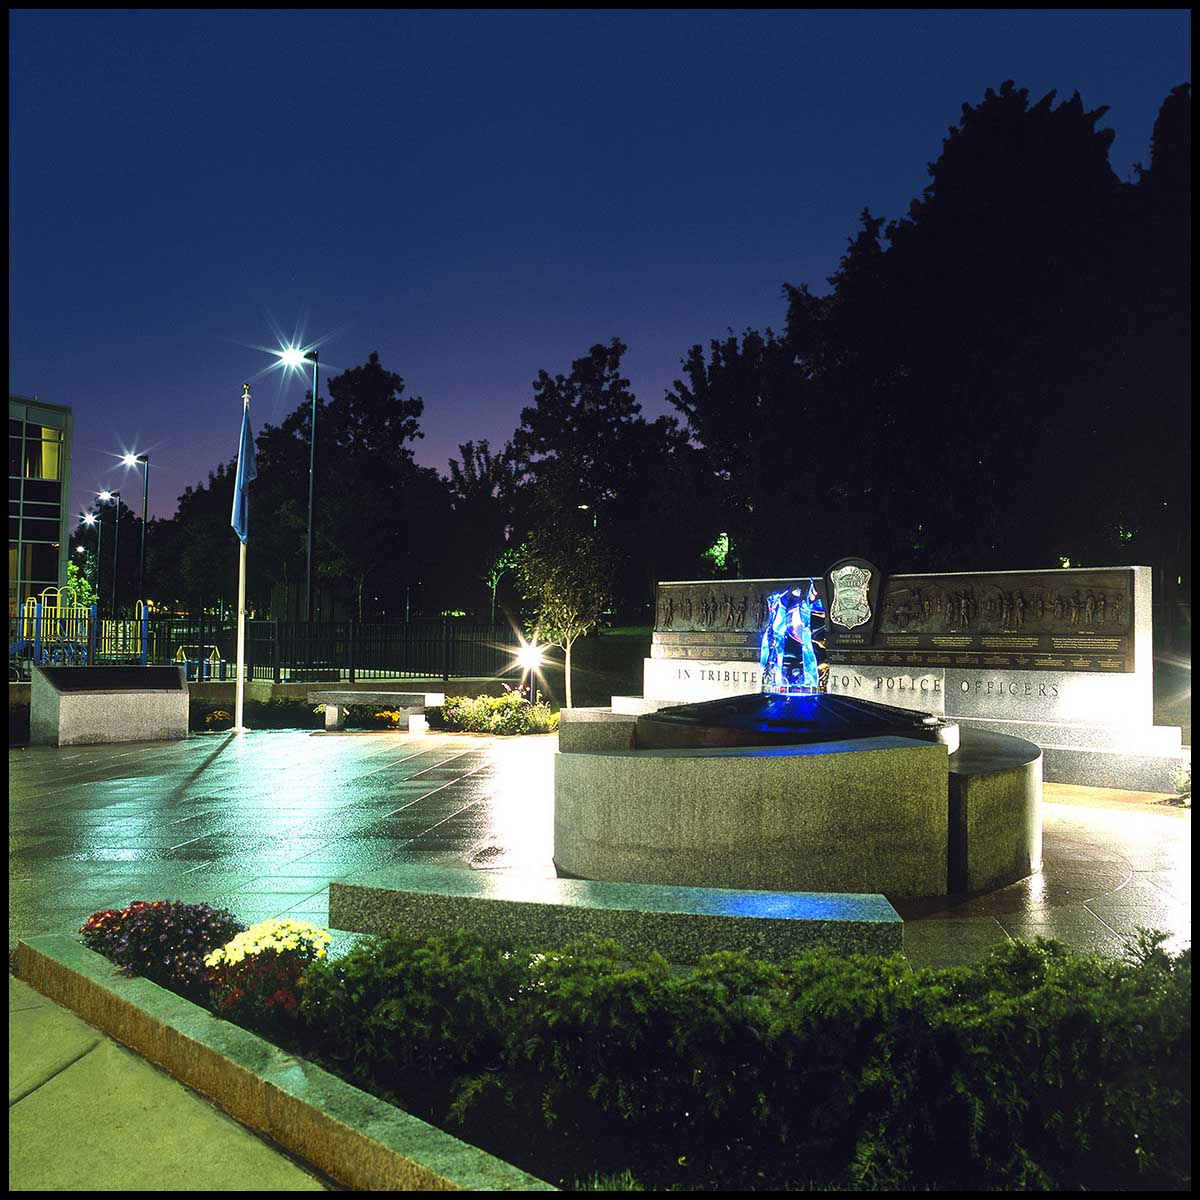 exterior photo of plaza lit at night with large granite memorials